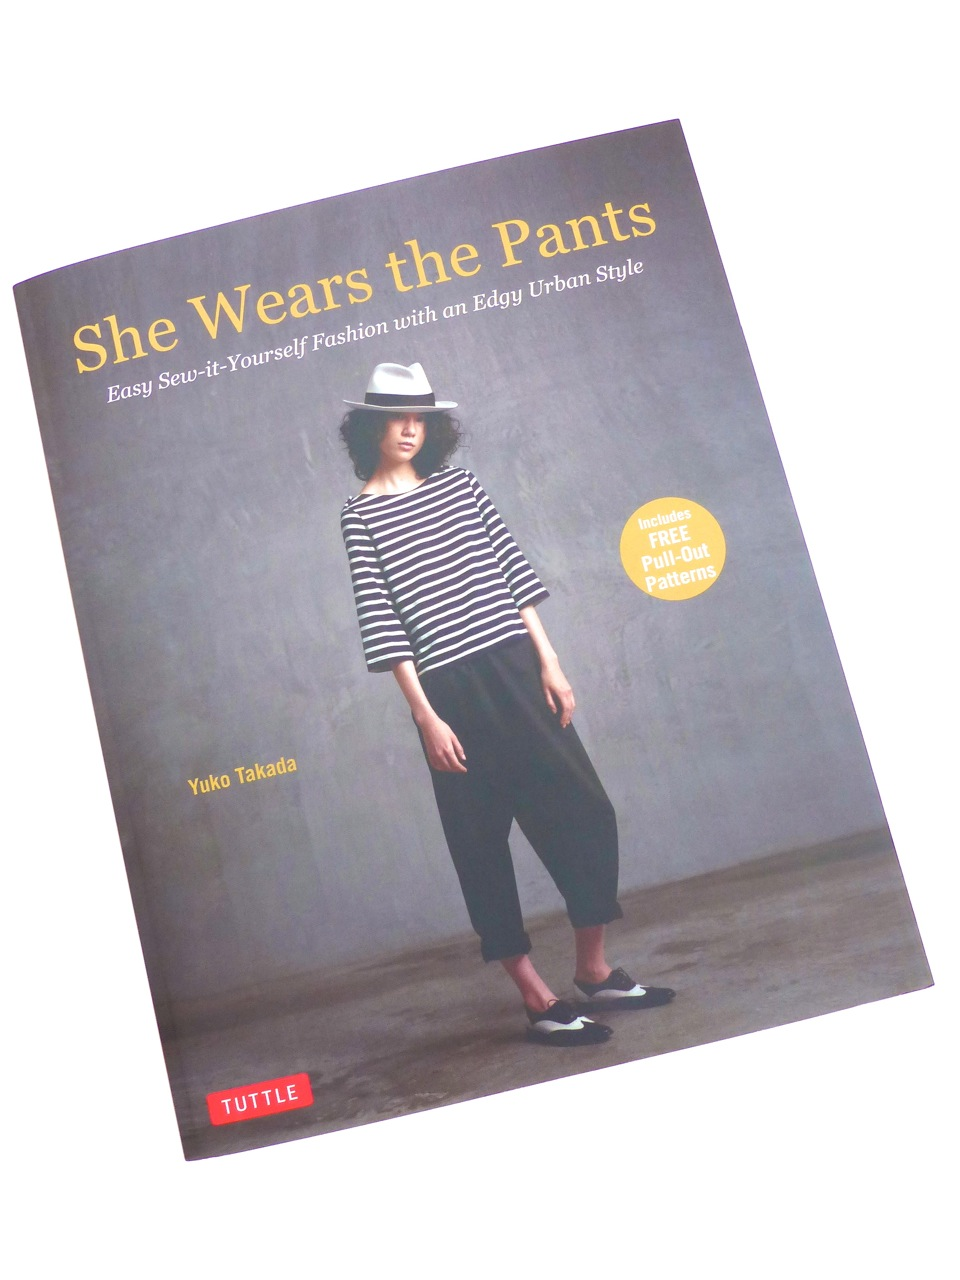 She Wears It Well Bbc News Presenter Ellie Crisell On: Verykerryberry: 'She Wears The Pants': Japanese Sewing